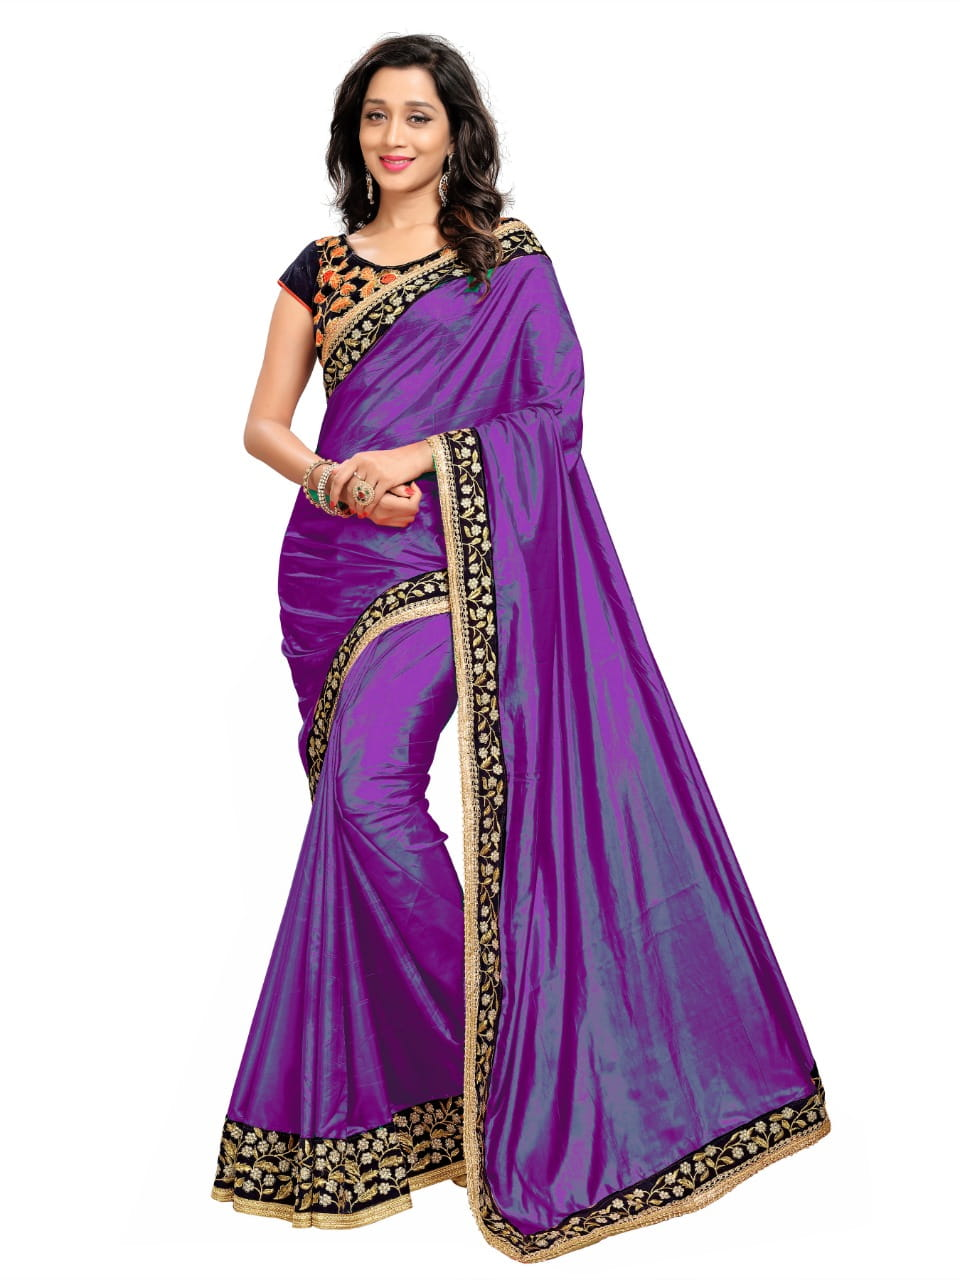 Radiant Violet Color Party Wear Paper Silk Fancy Embroidered Work Saree Blouse